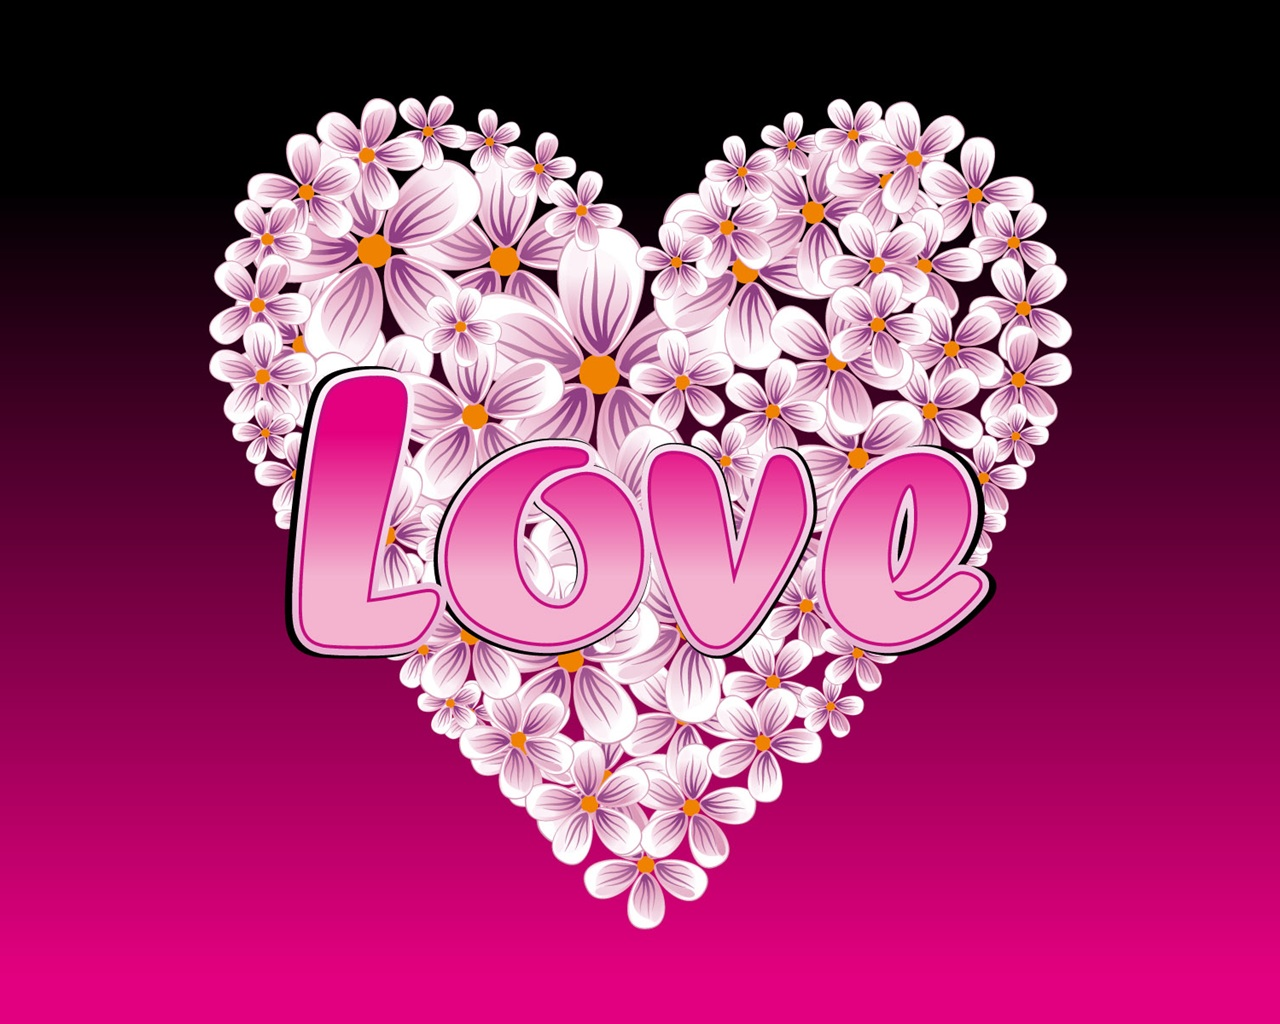 Heart-shaped flowers of love wallpaper - 1280x1024